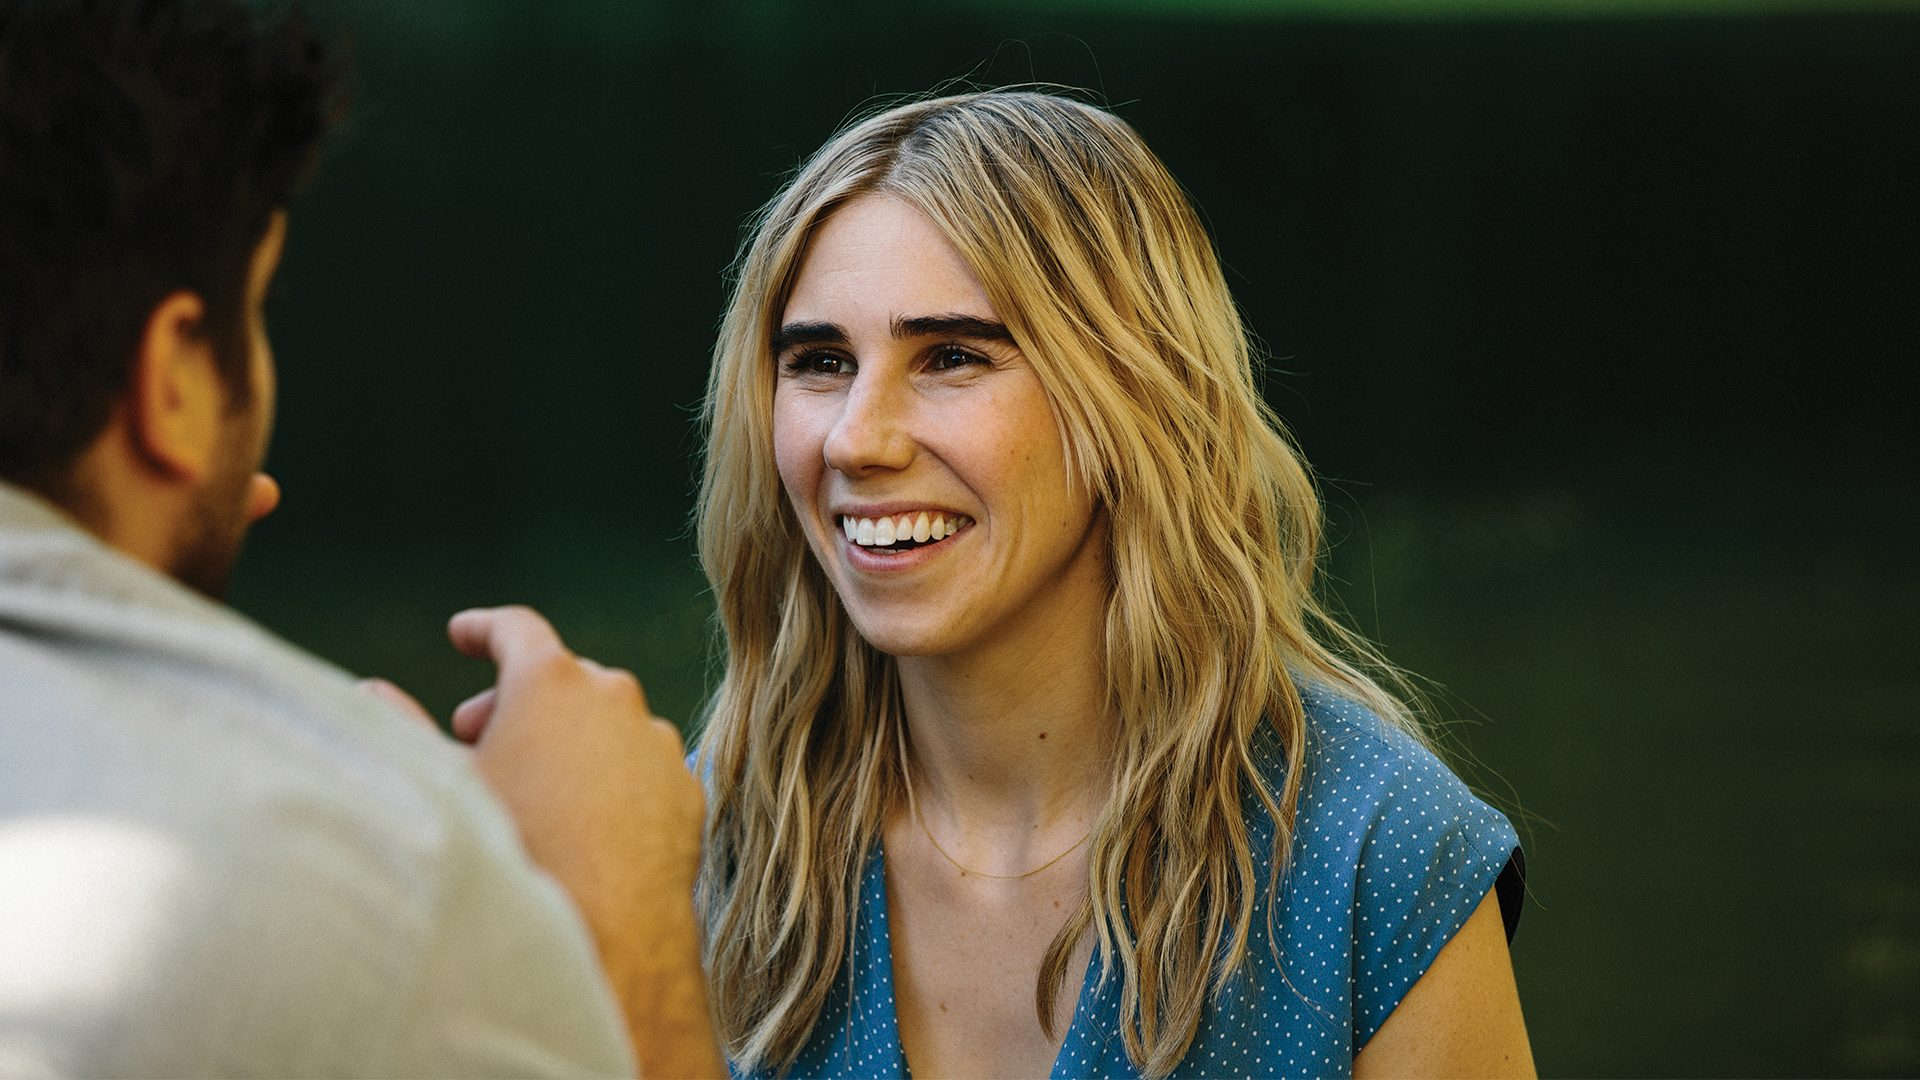 Zosia Mamet as Diana in THE BOY DOWNSTAIRS. Photo by Jon Pack